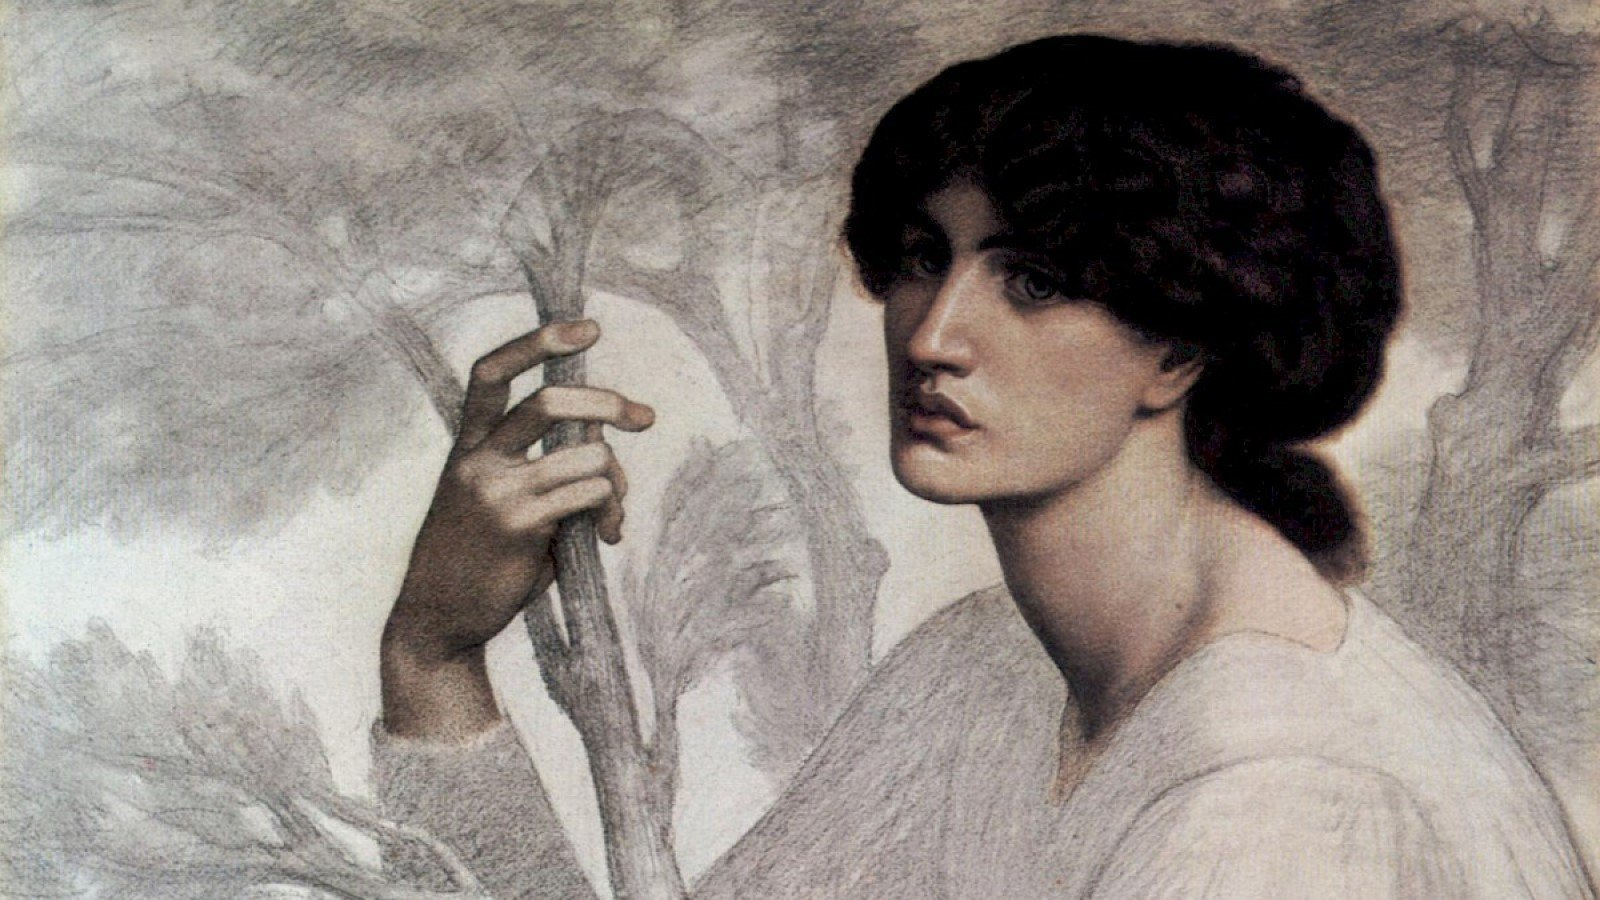 The Pre-Raphaelites - Drawings & Watercolours at The Ashmolean. Image: Dante Gabriel Rossetti, The Day Dream (Study), 1878, Chalk Drawing, 104.8 x 76.8cm (cropped)